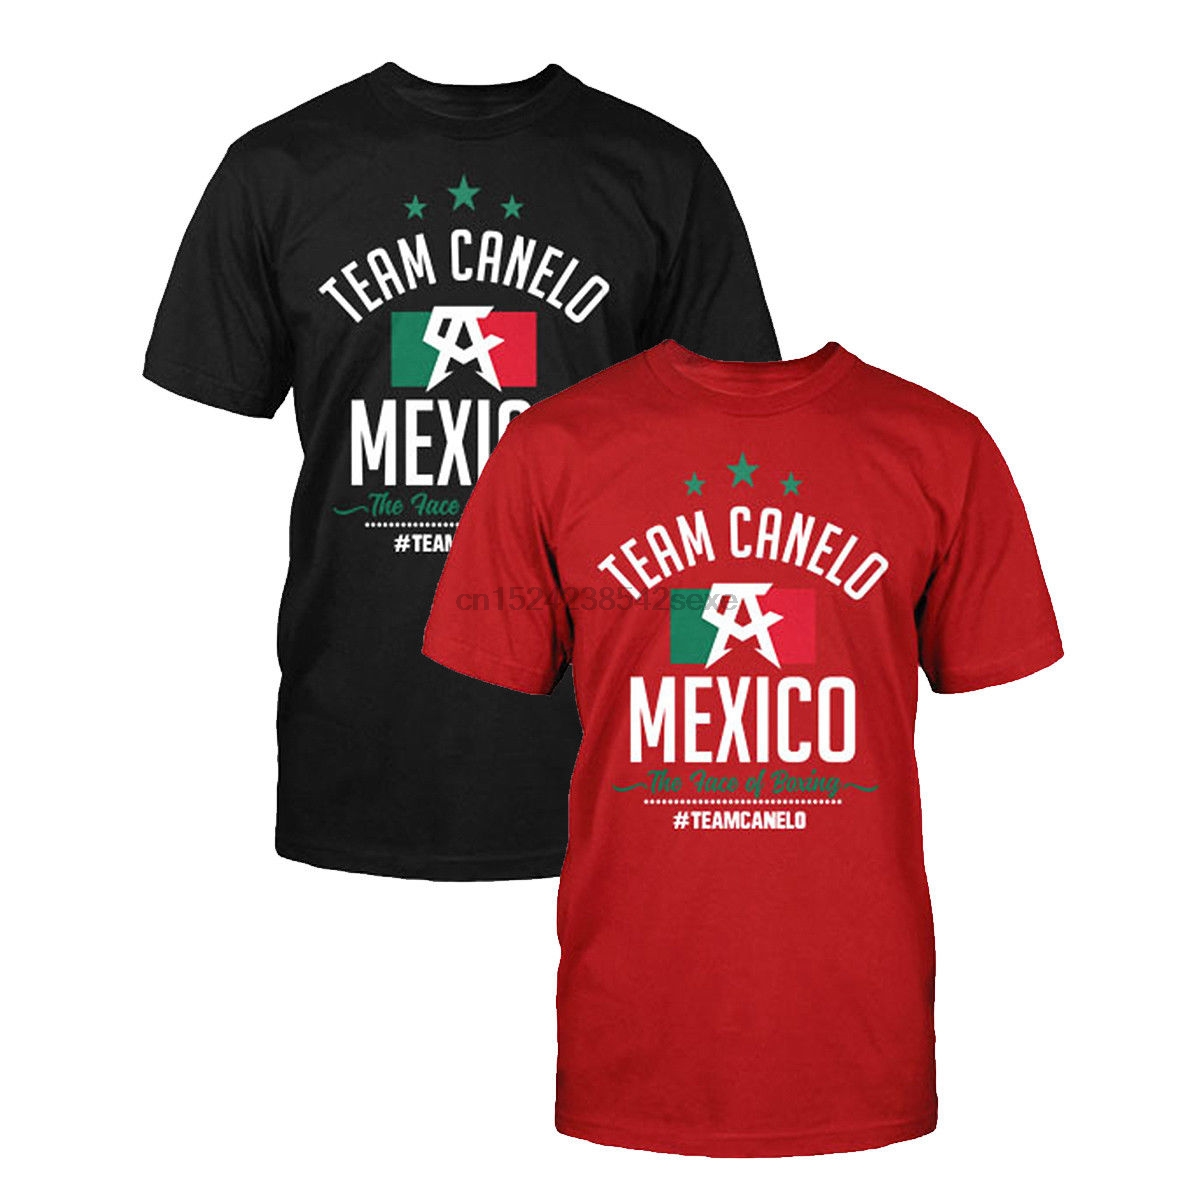 9199d69ca3f0 Buy canelo t shirt and get free shipping on AliExpress.com